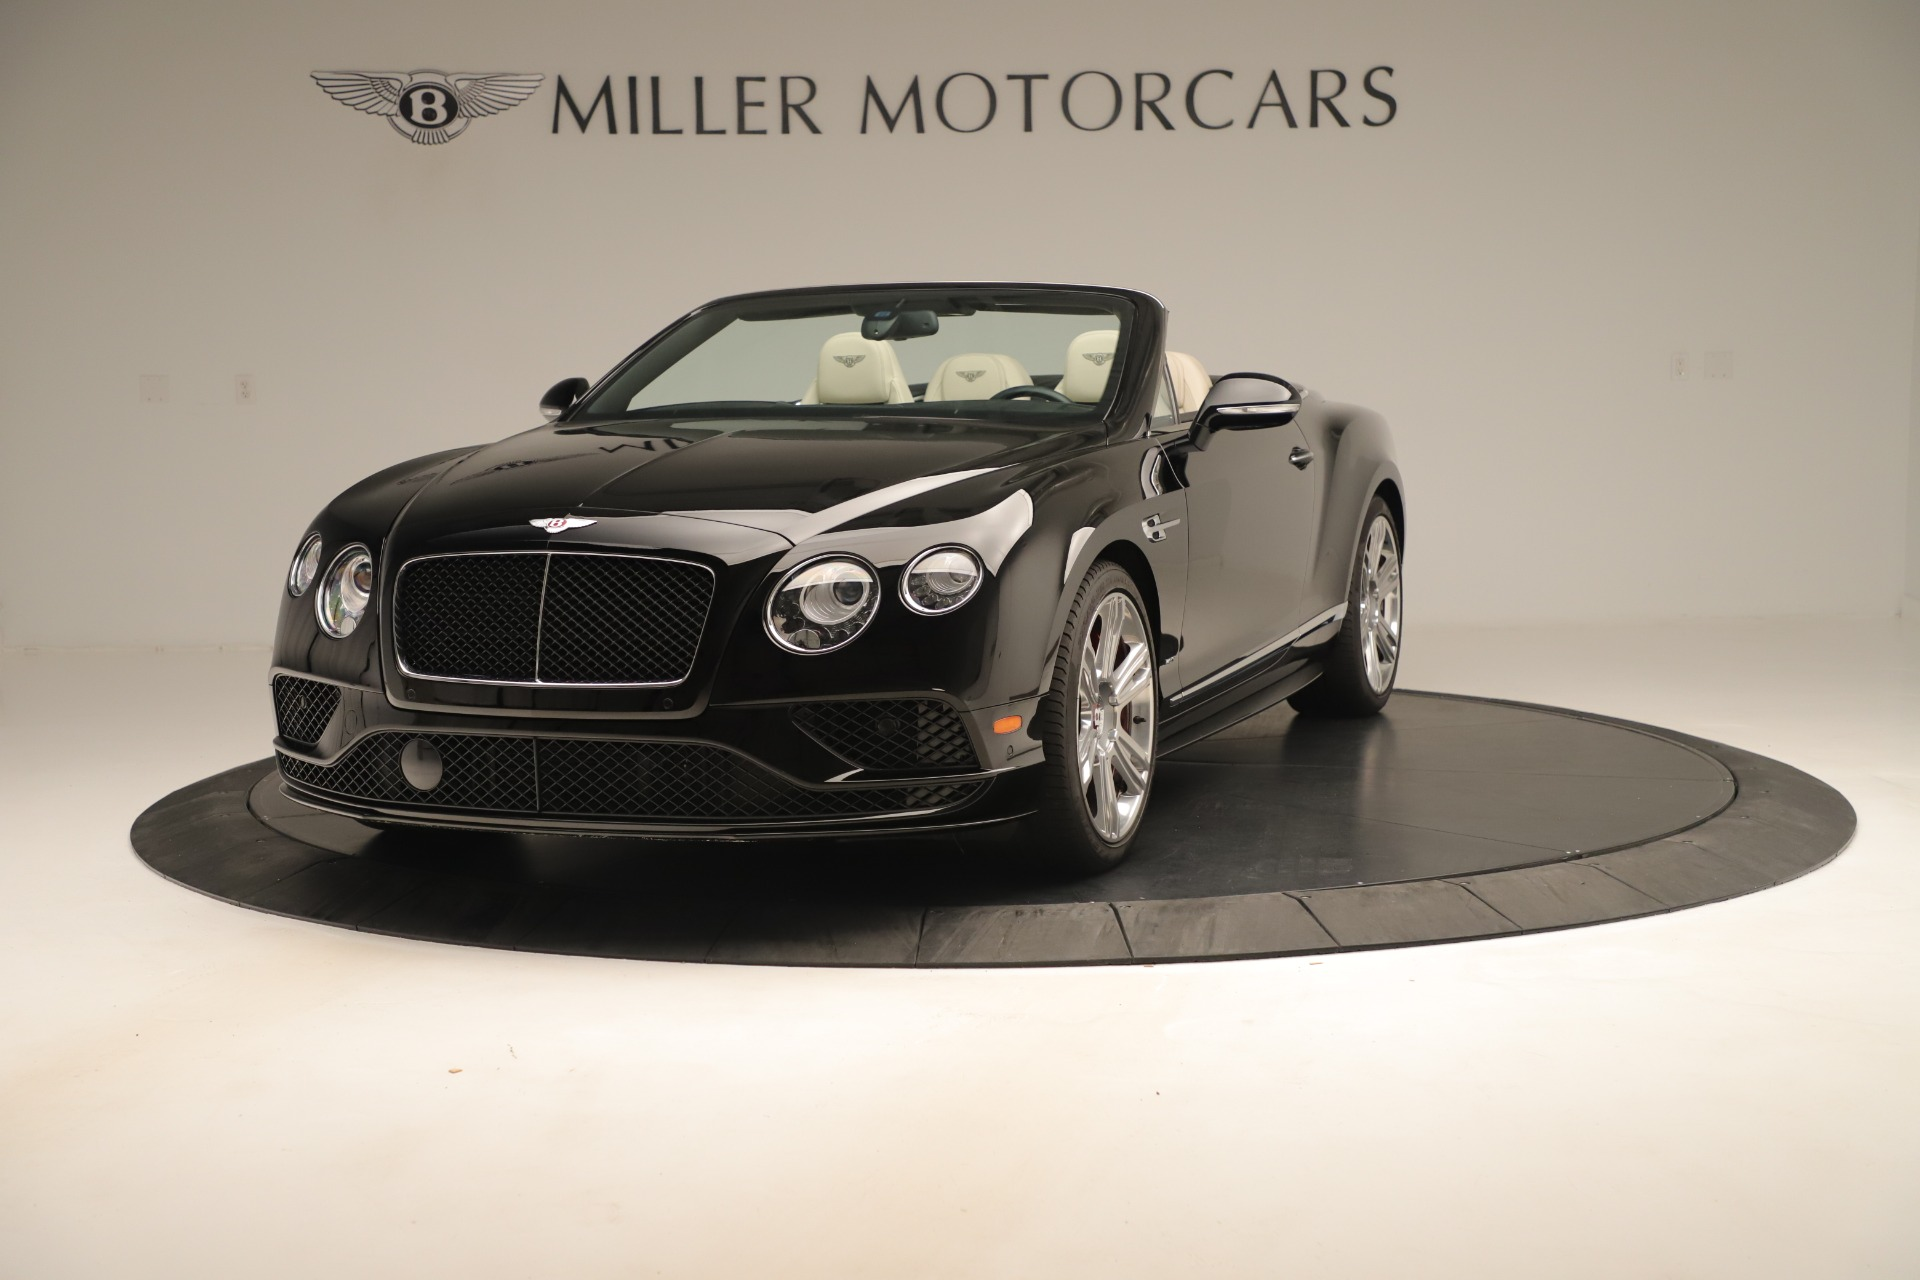 Used 2016 Bentley Continental GTC V8 S for sale $147,900 at Alfa Romeo of Westport in Westport CT 06880 1